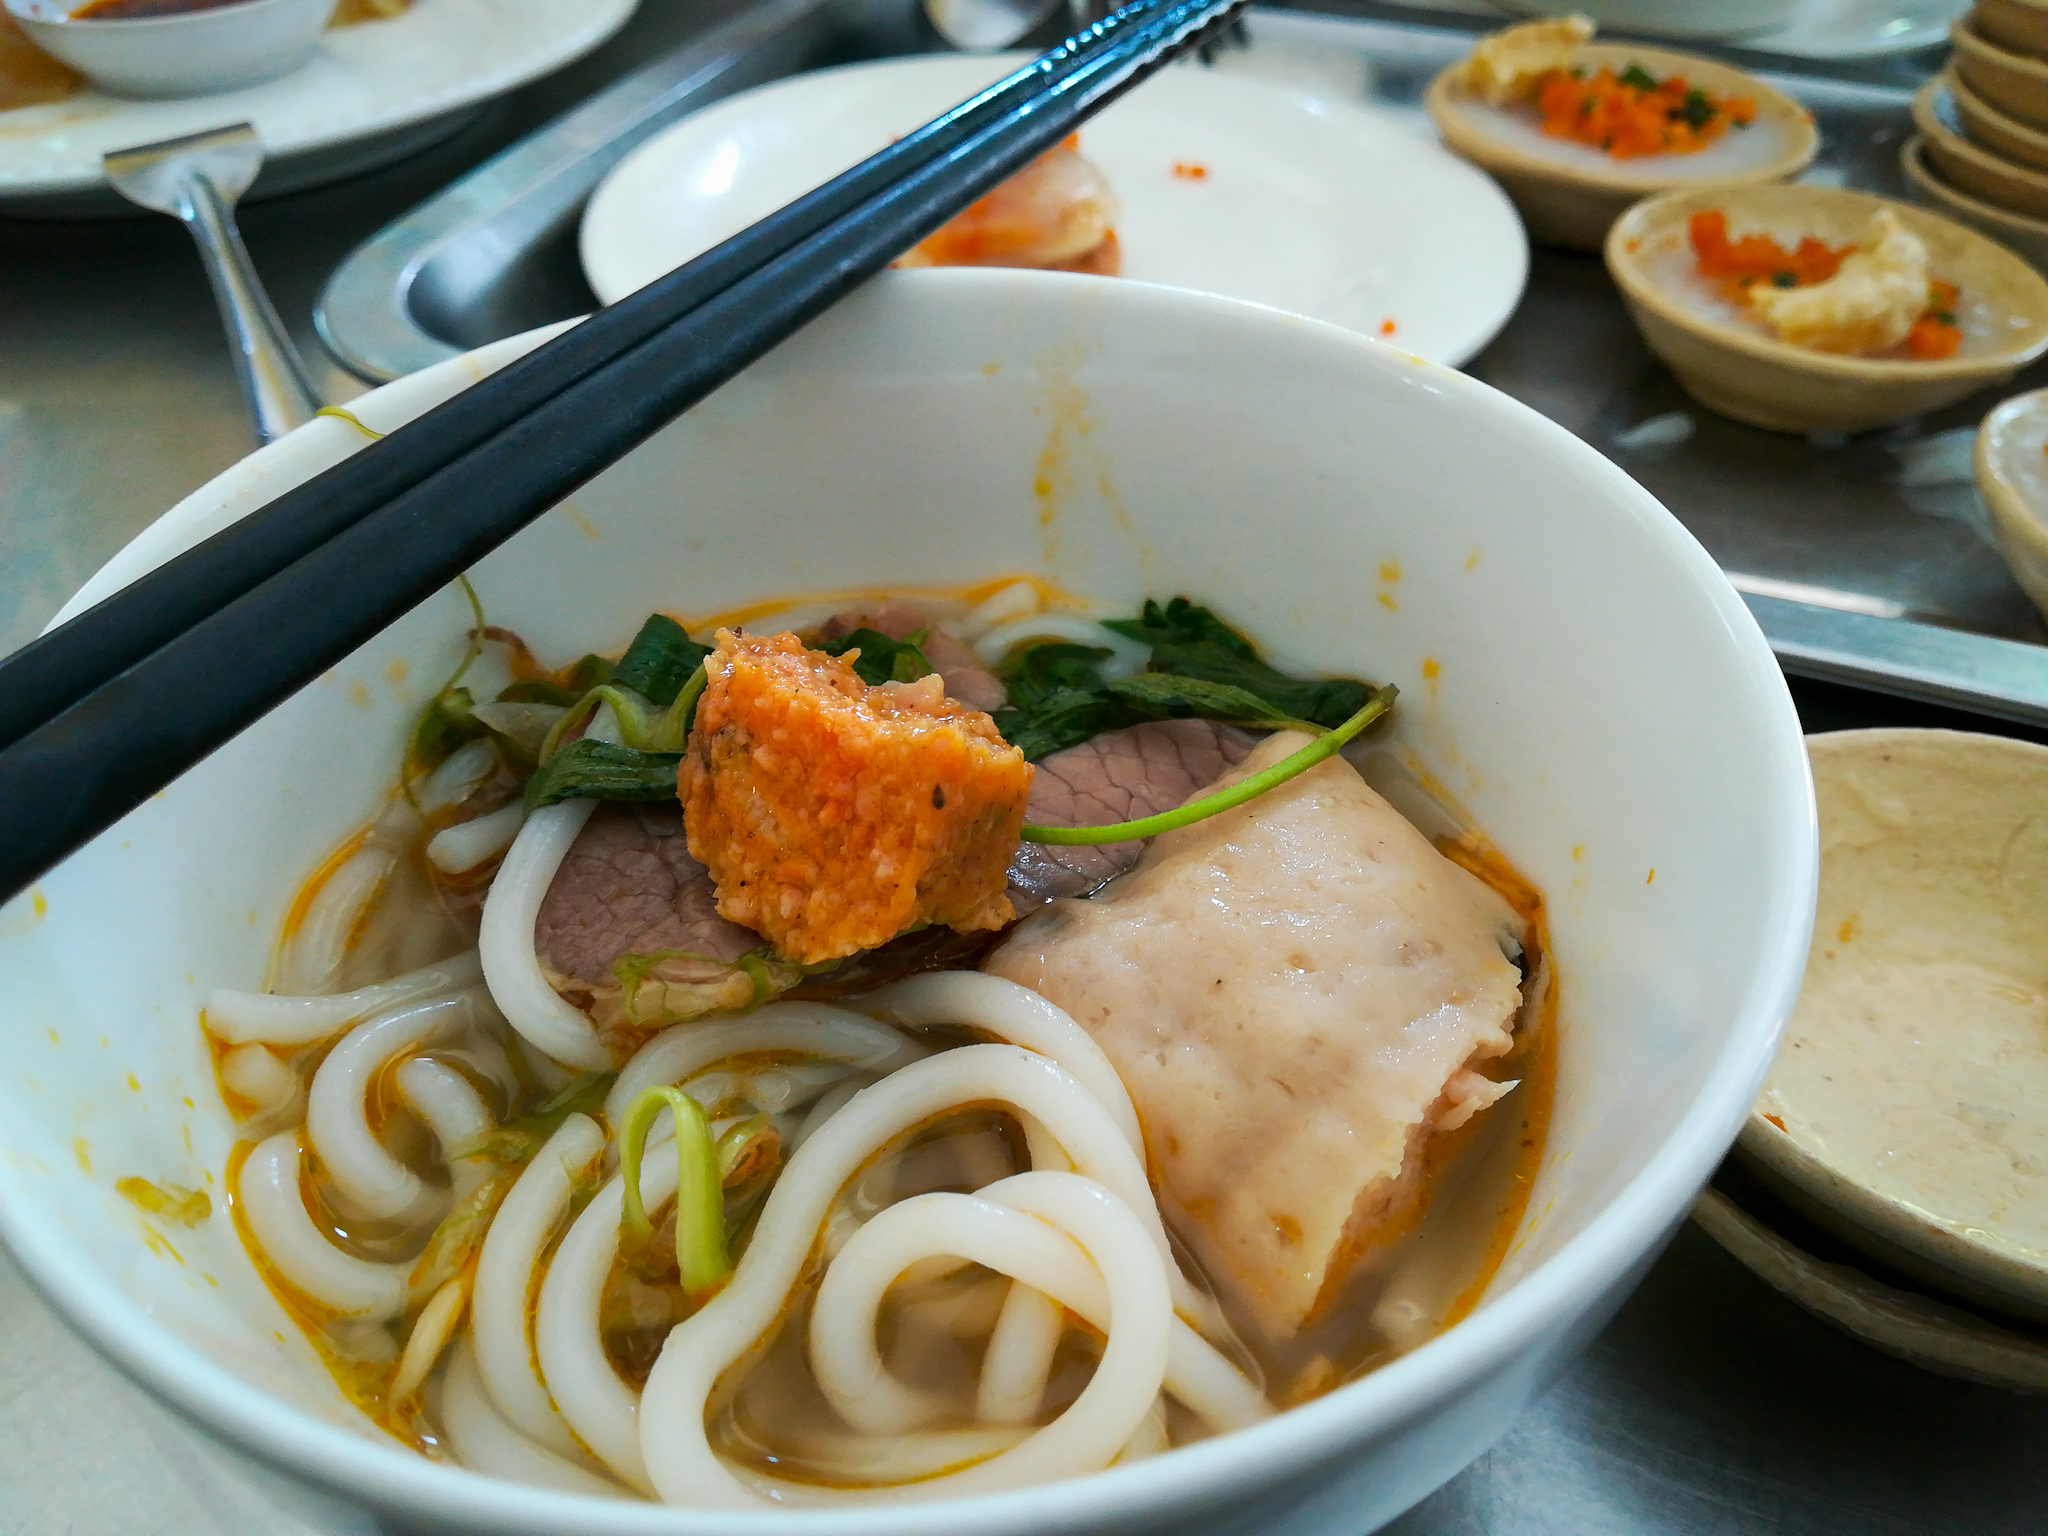 Bun Bo Hue is rice noodles in beef broth, which was lip smacking-ly good. This style of Bun Bo is from the old imperial city of Hue, which I very much hope to visit soon.